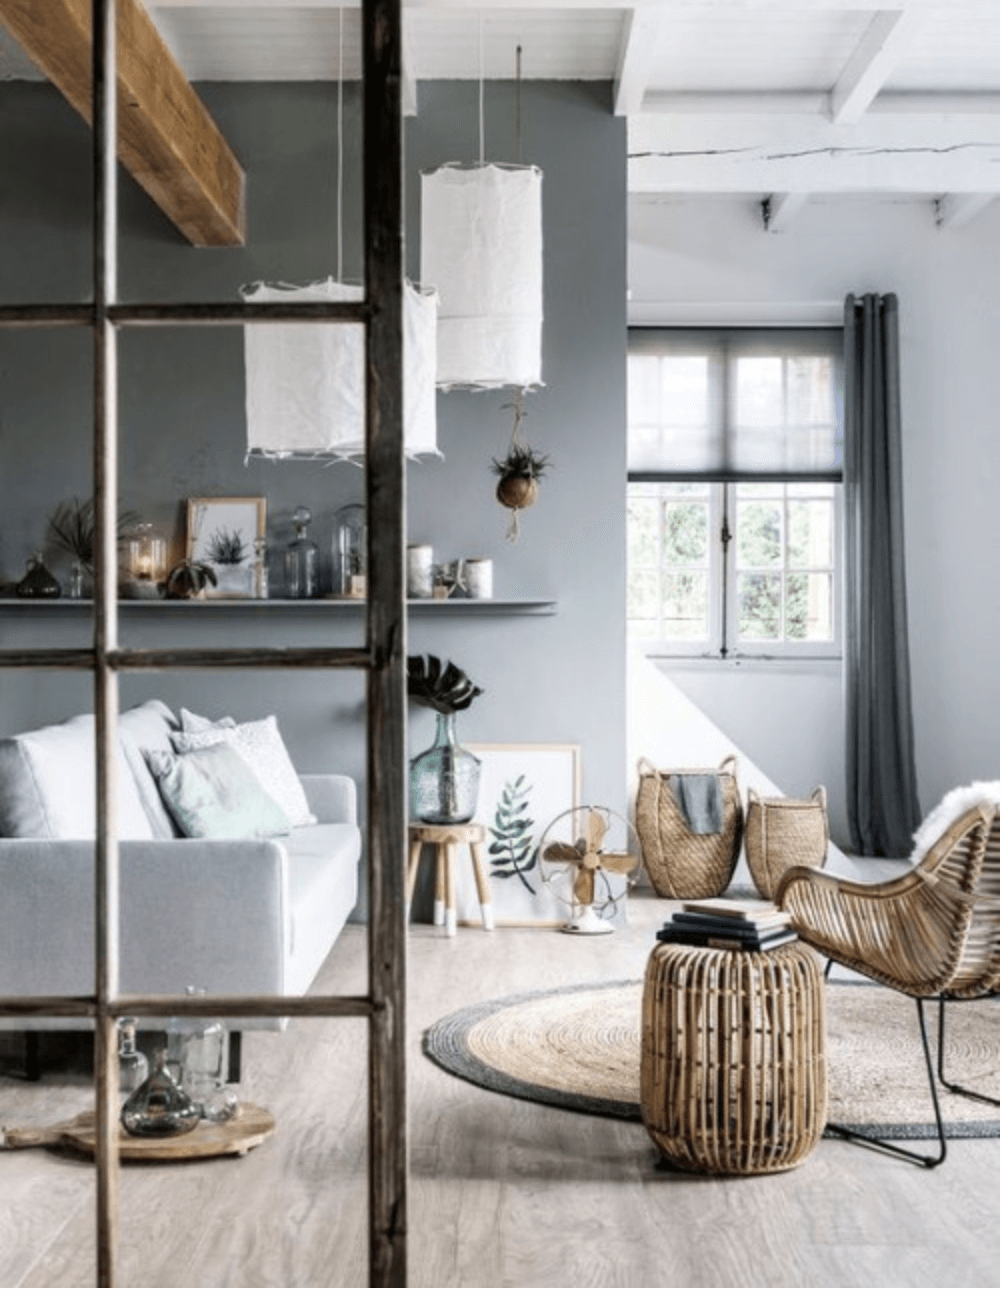 Interior design trends for 2018 Home fashion furniture trends